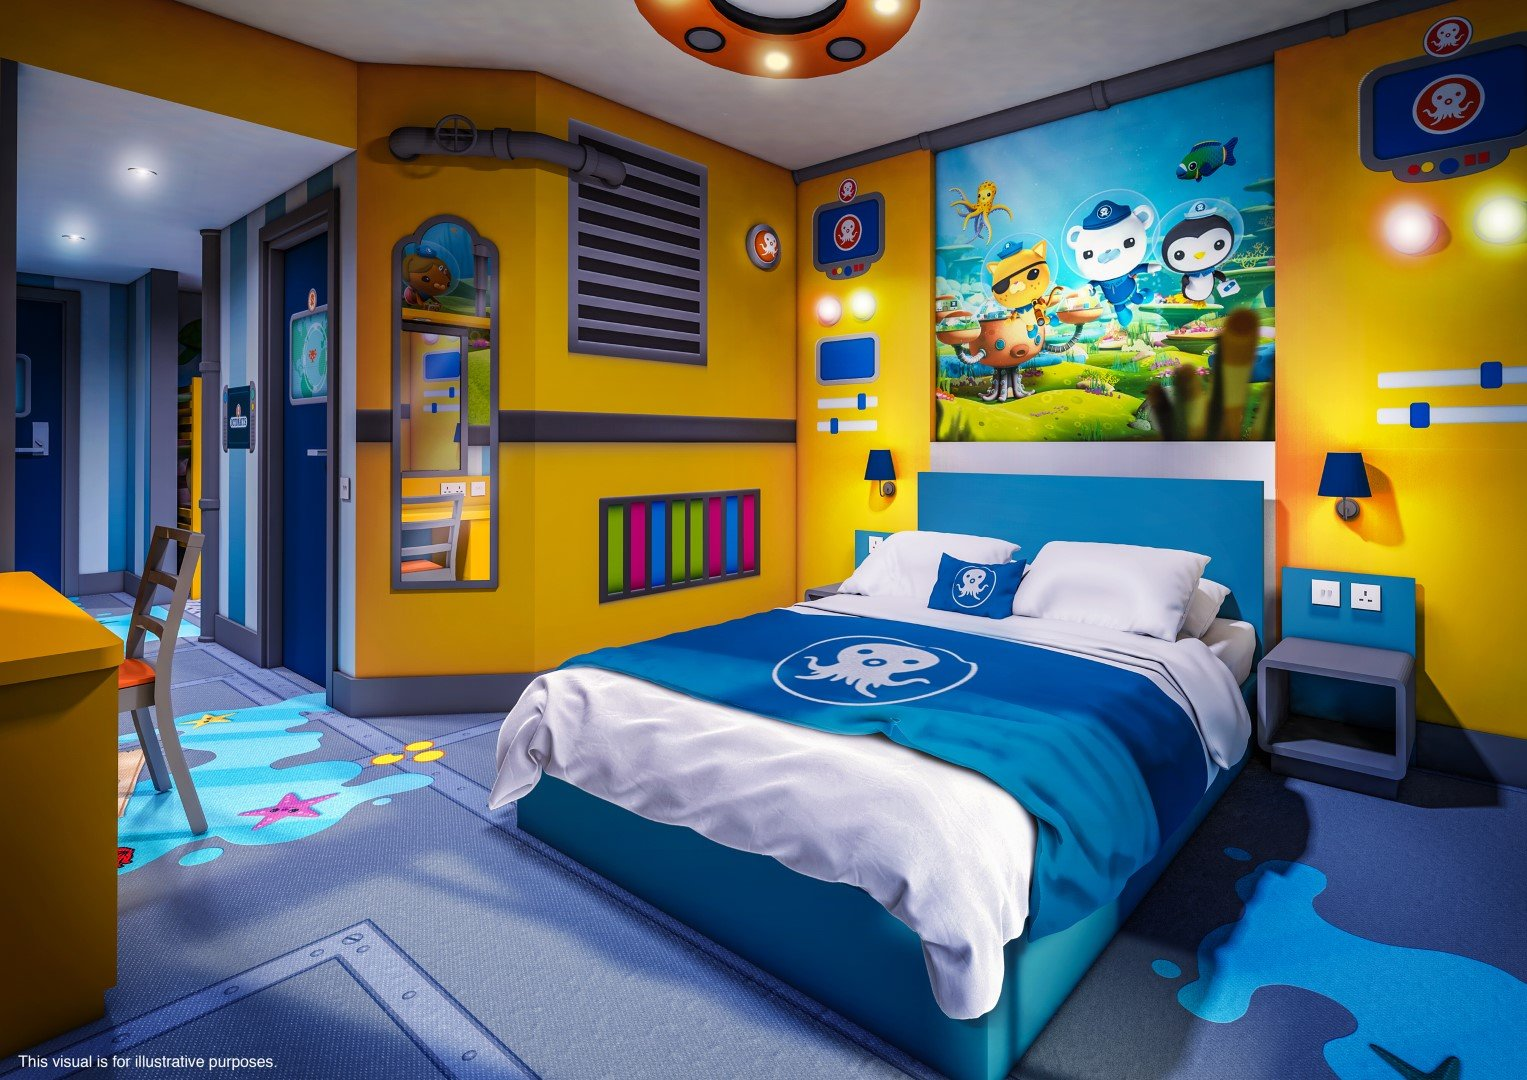 Go underwater at the CBeebies Land Hotel in the Octonauts Room